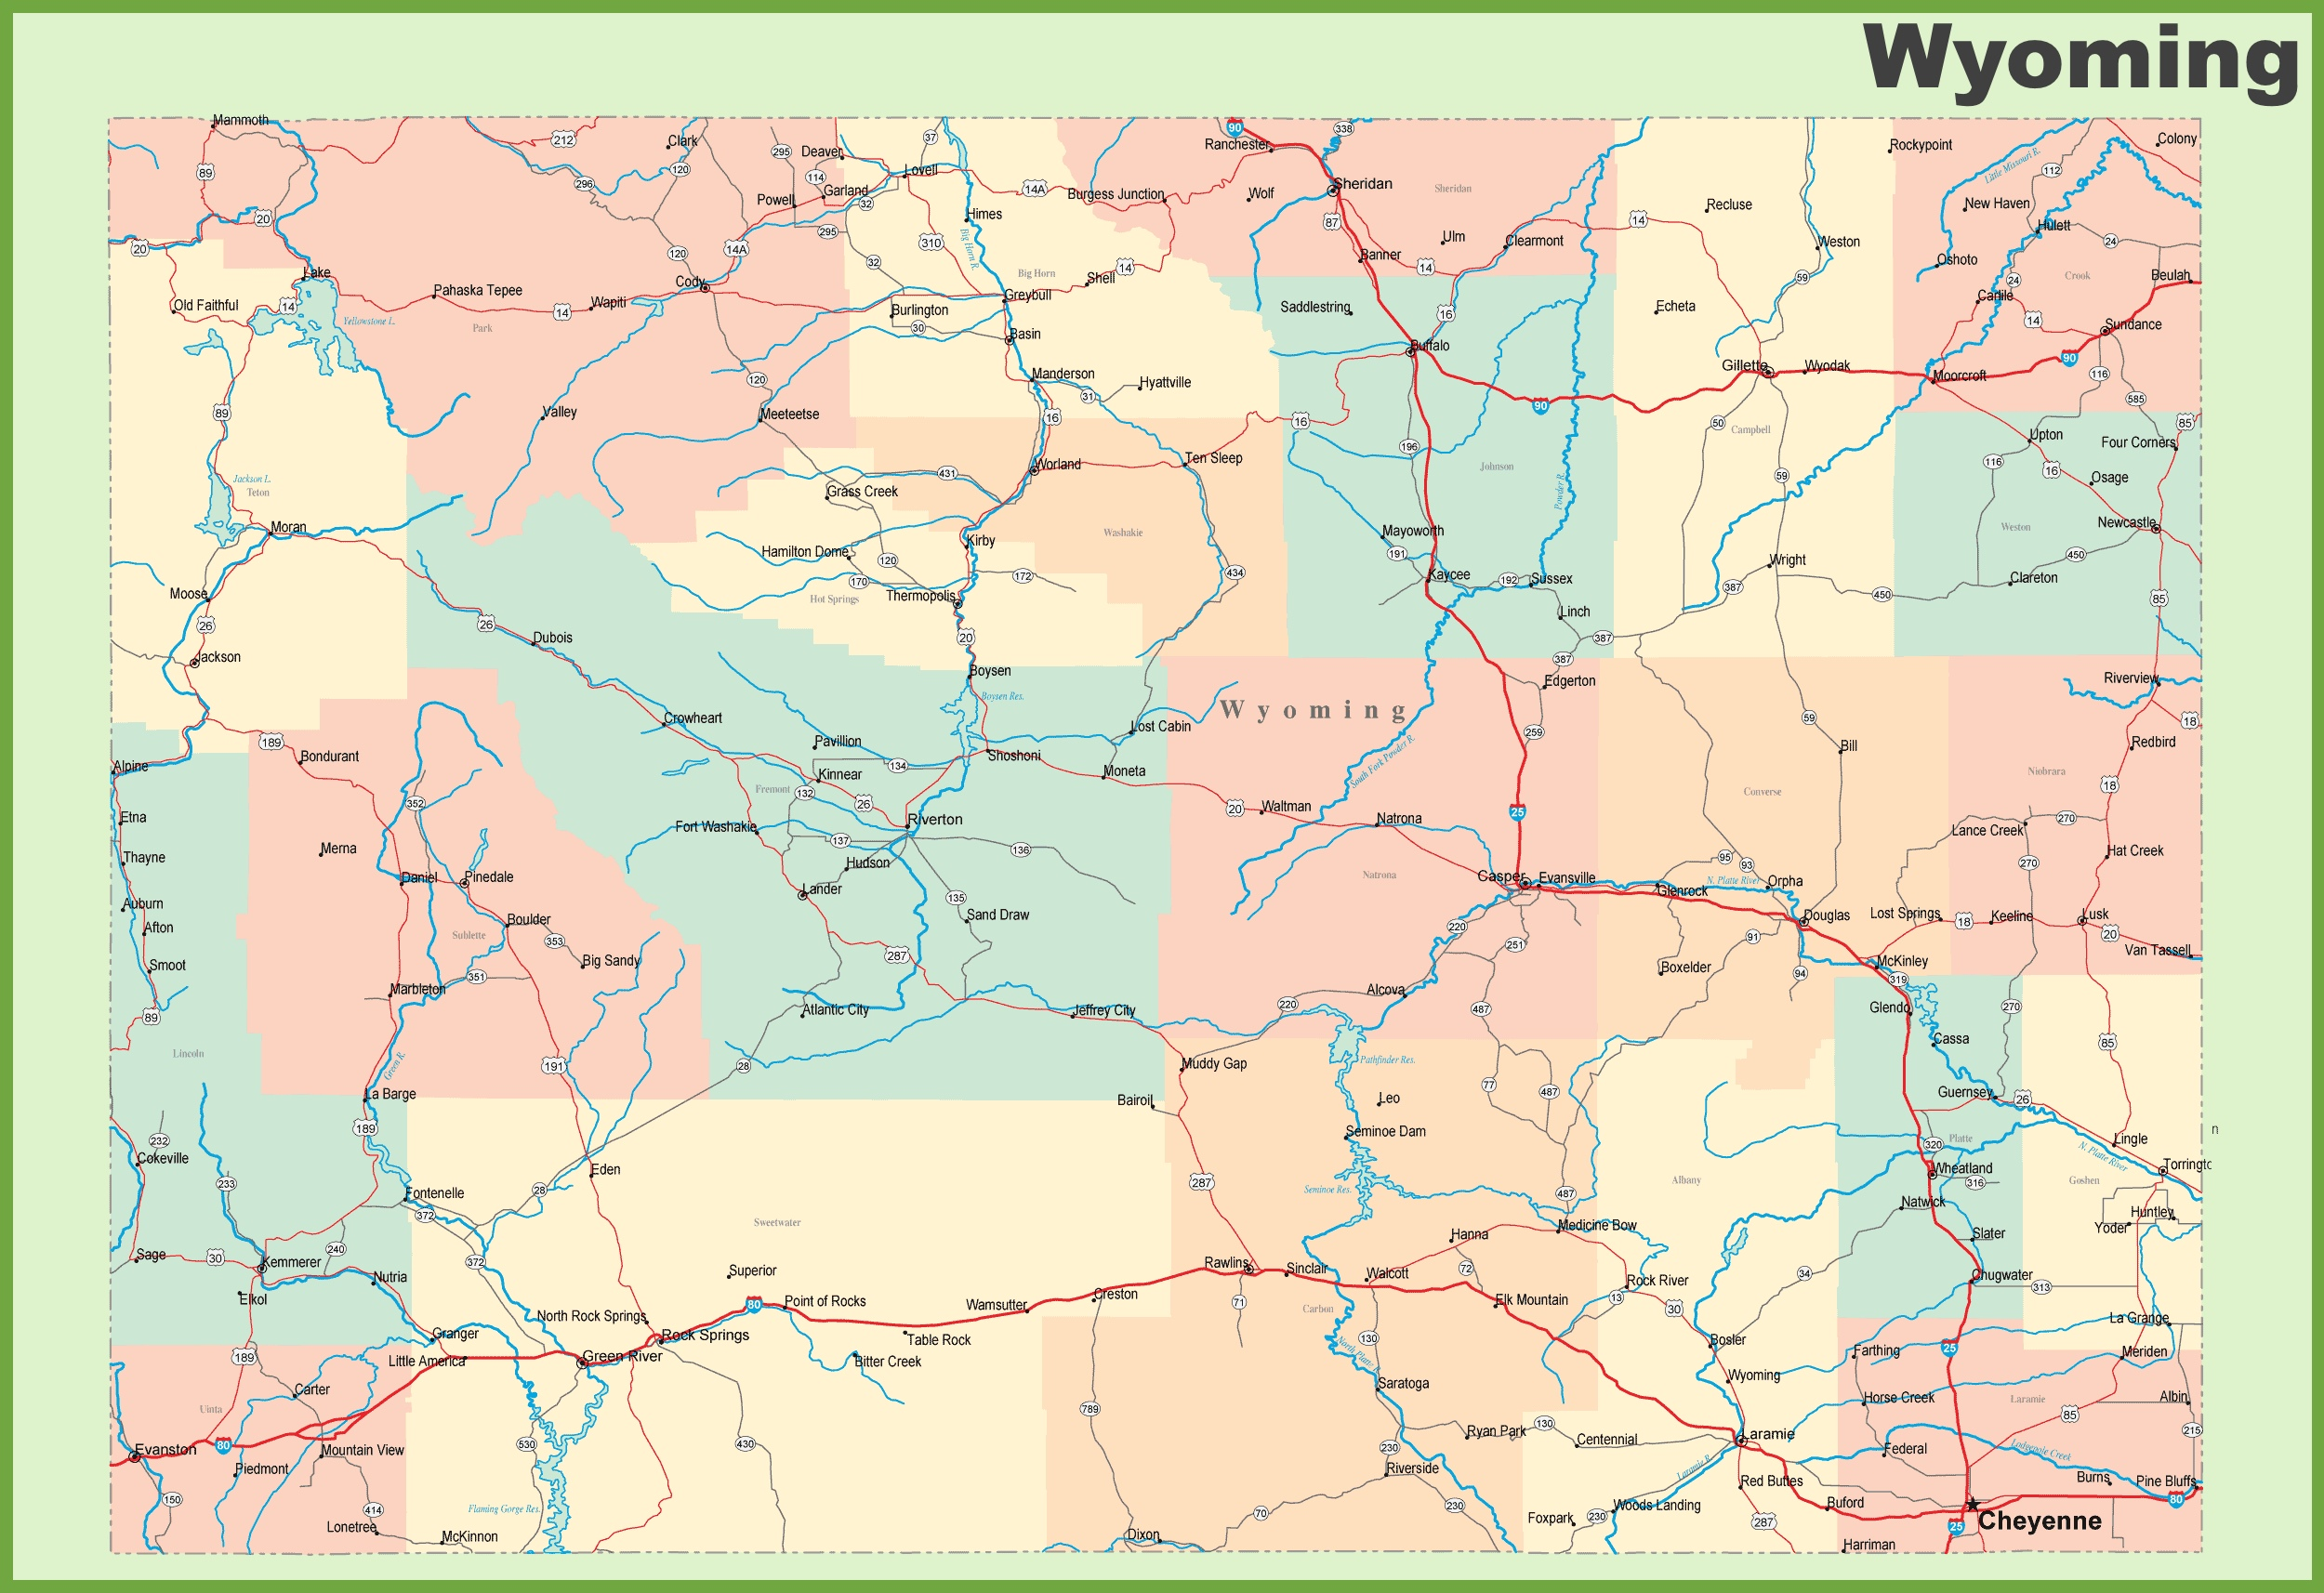 Wyoming Map Of Cities Road map of Wyoming with cities